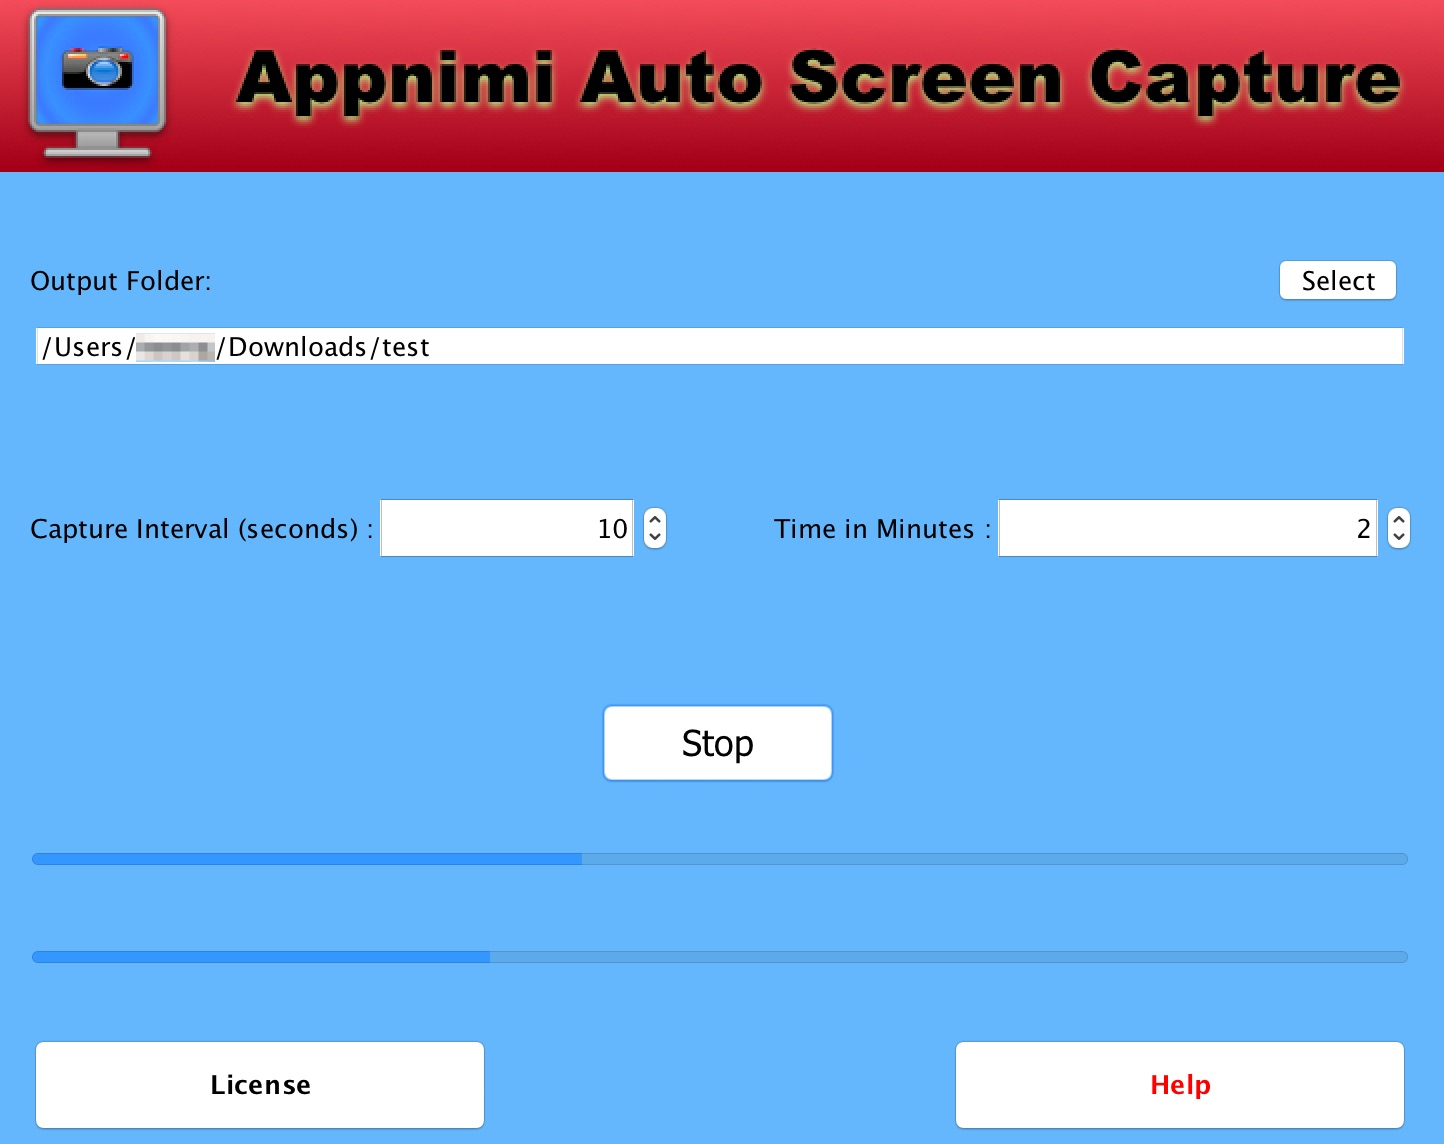 Appnimi Auto Screen Capture 1.2 Screen shot